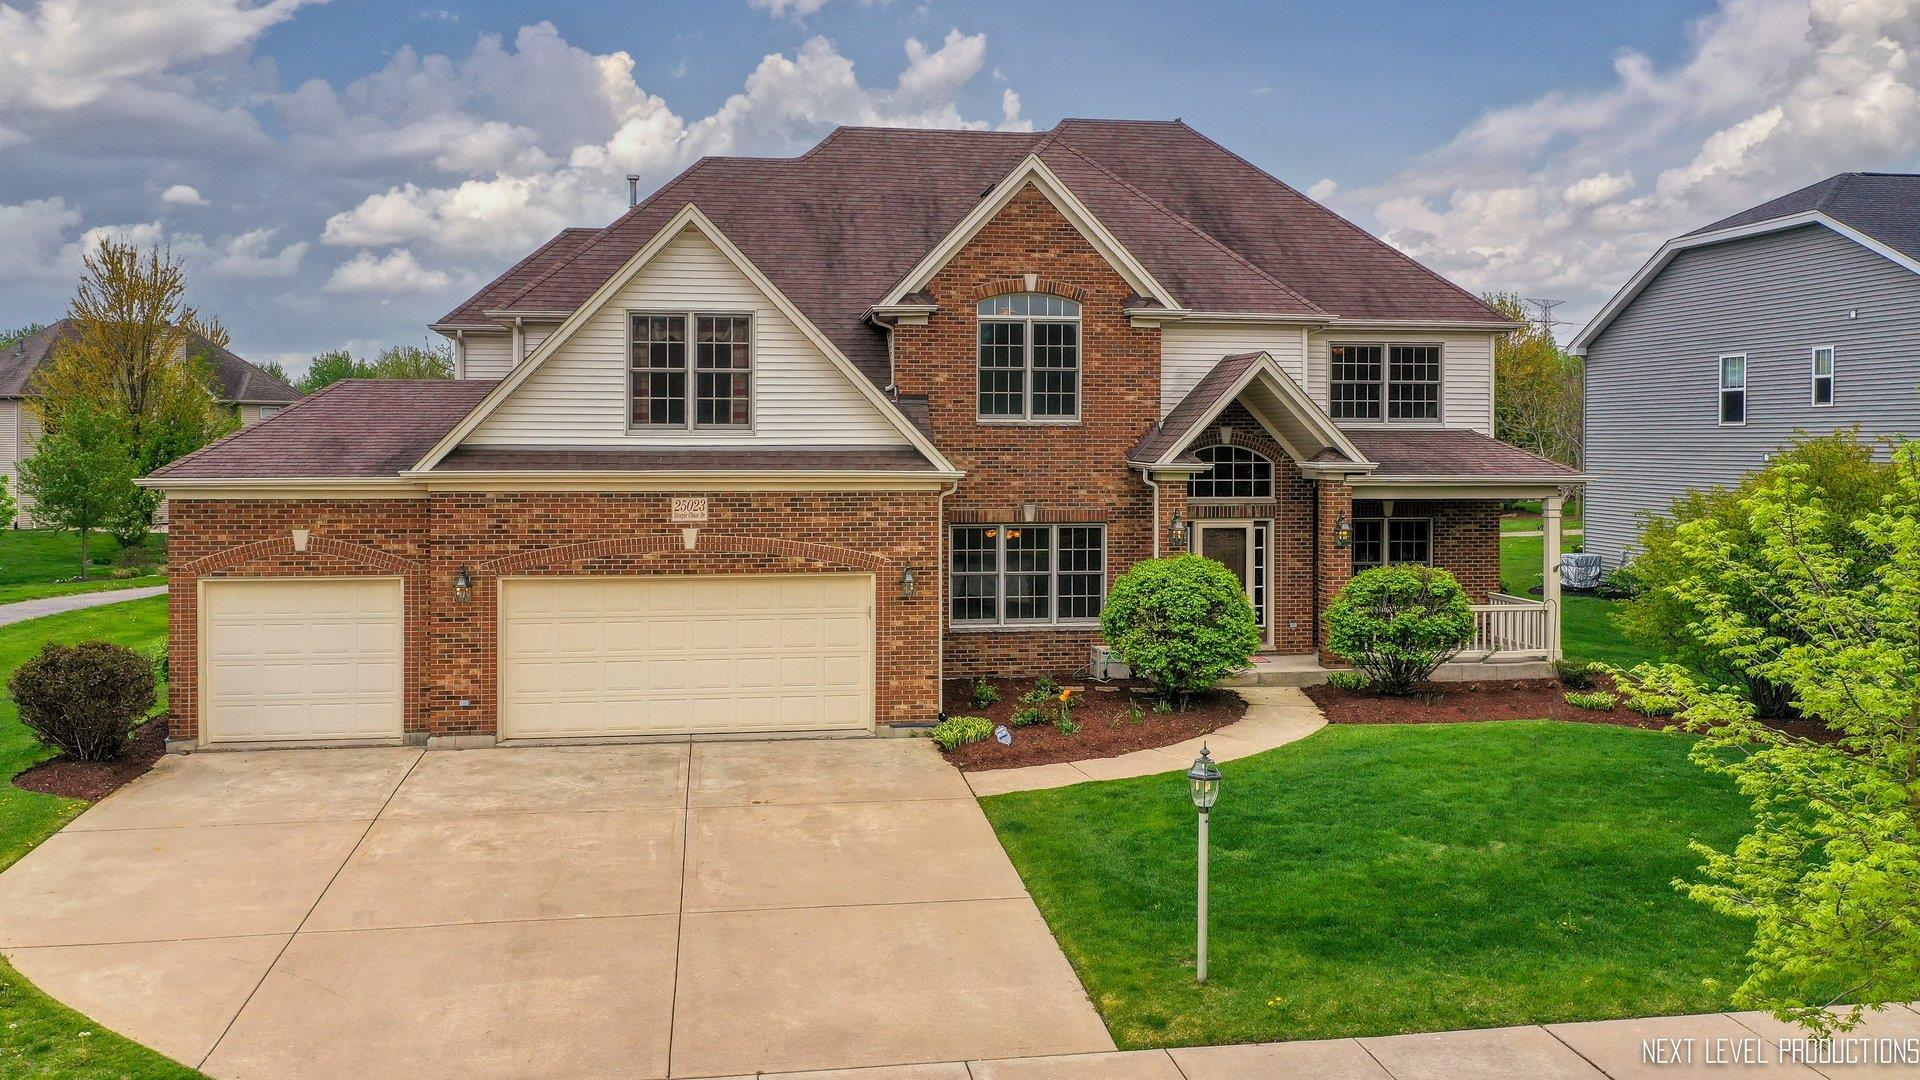 25023 STEEPLE CHASE Drive, Plainfield, IL 60585 - #: 11068950